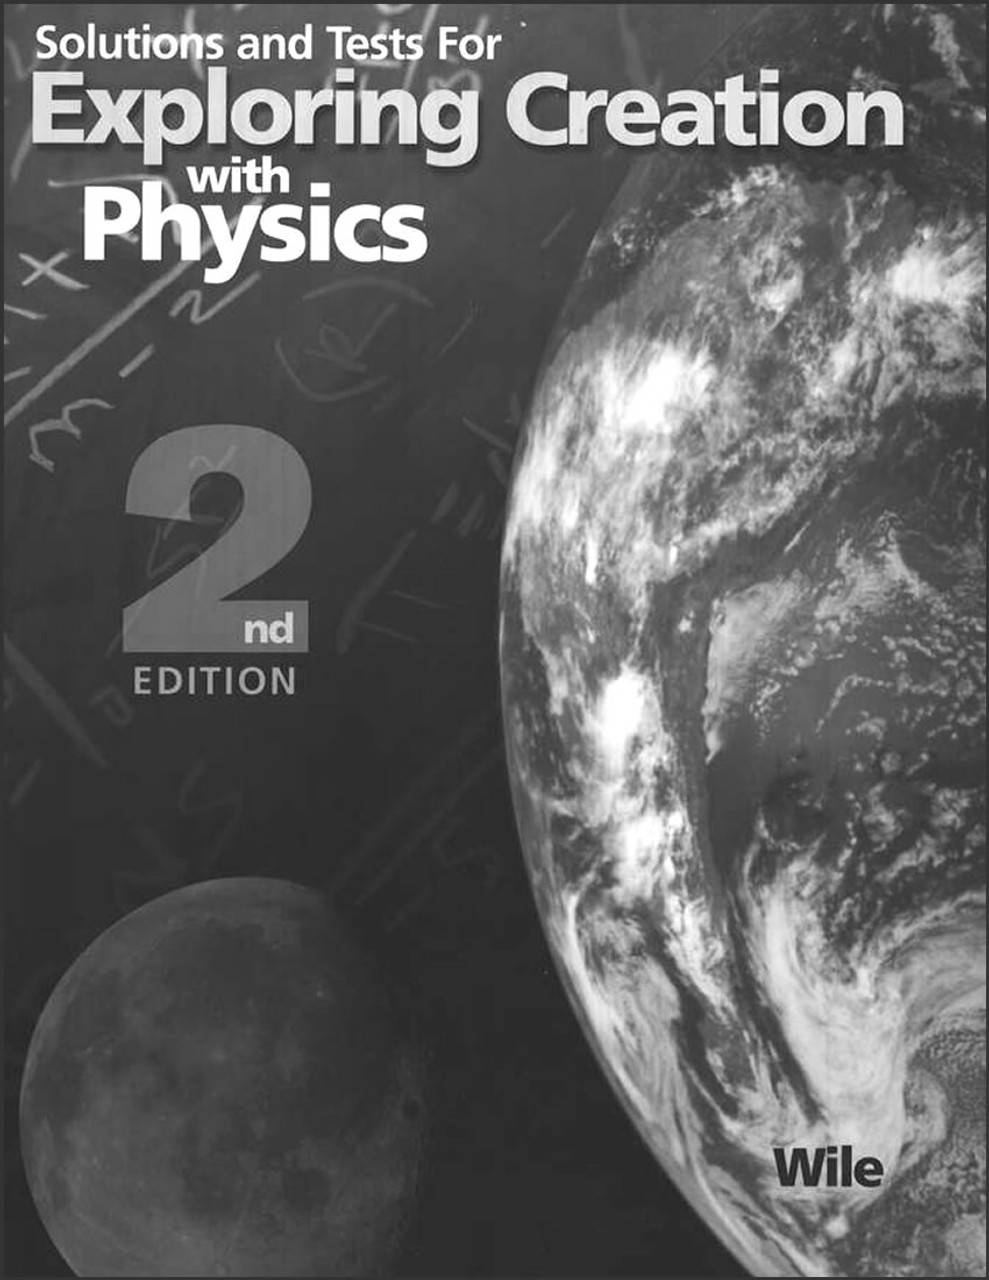 Exploring Creation with Physics, 2nd edition - Solutions & Tests